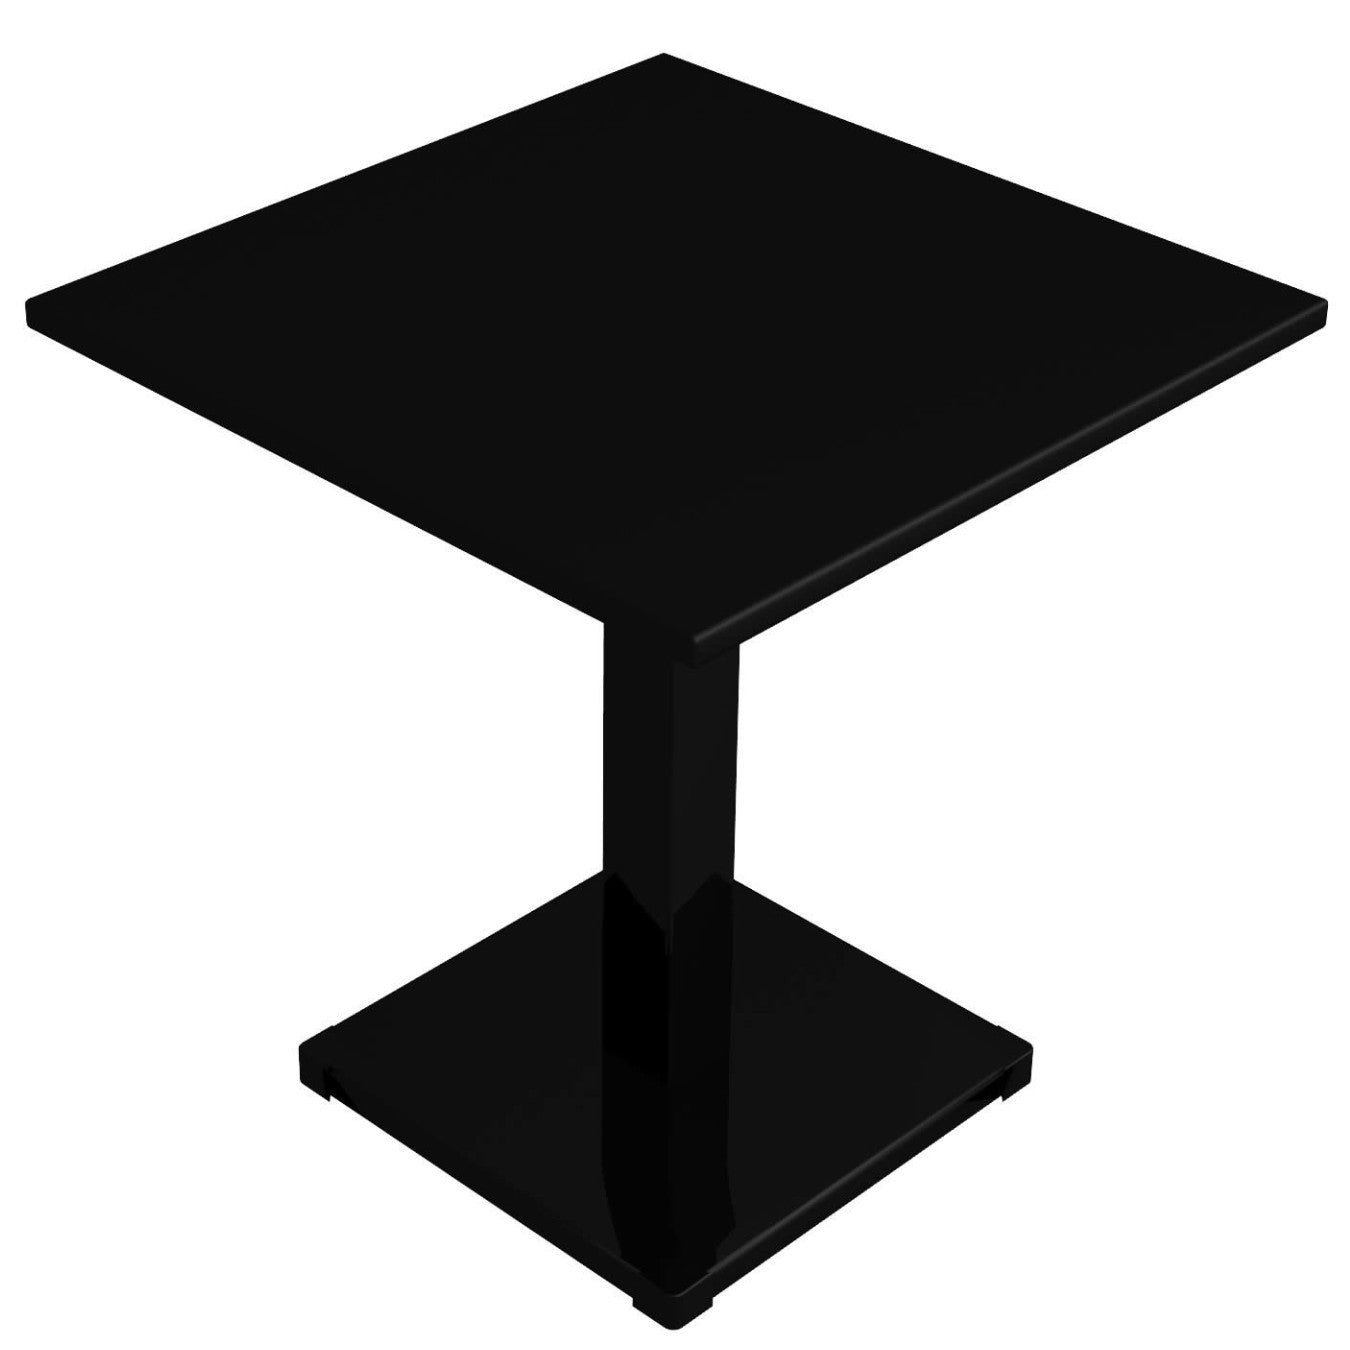 Conrad table, one leg, 70x70